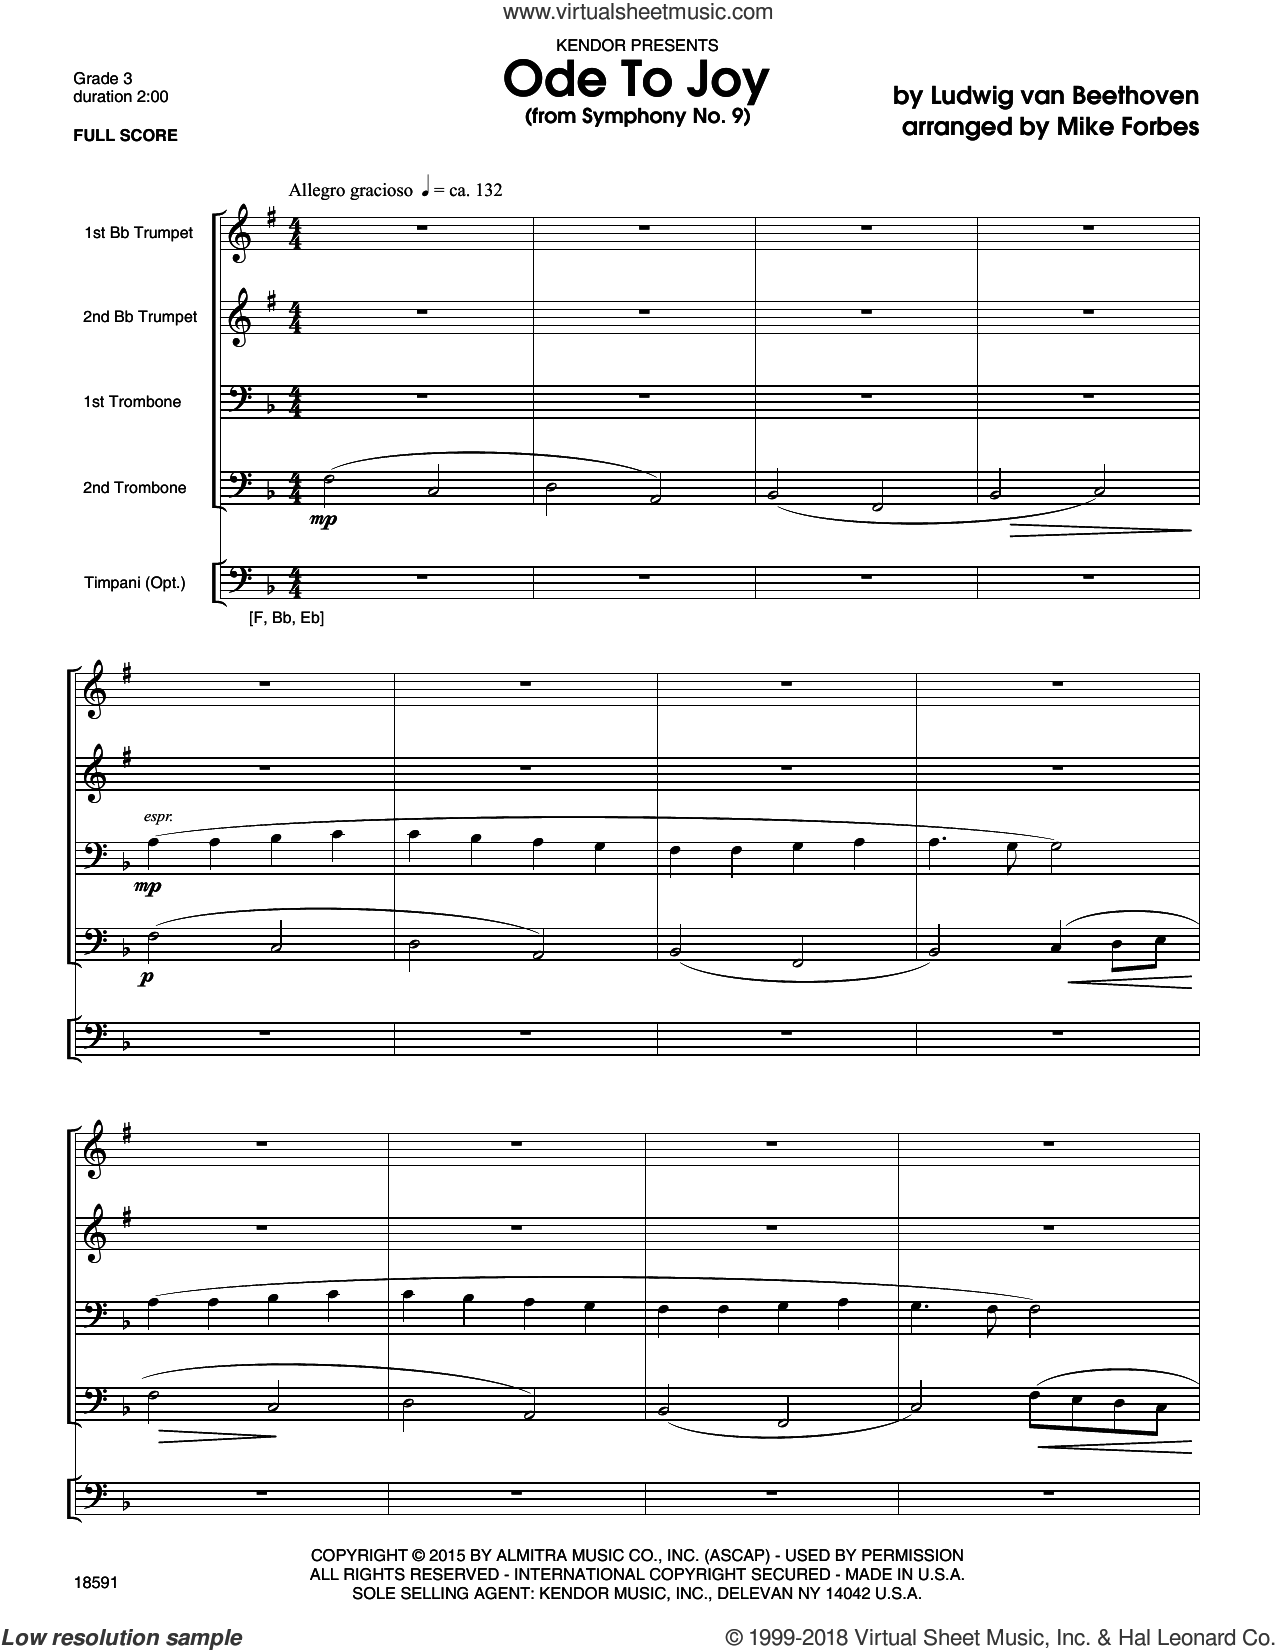 Ode To Joy (from Symphony No. 9) (COMPLETE) sheet music for four trumpets by Ludwig van Beethoven and Michael Forbes, classical score, intermediate skill level